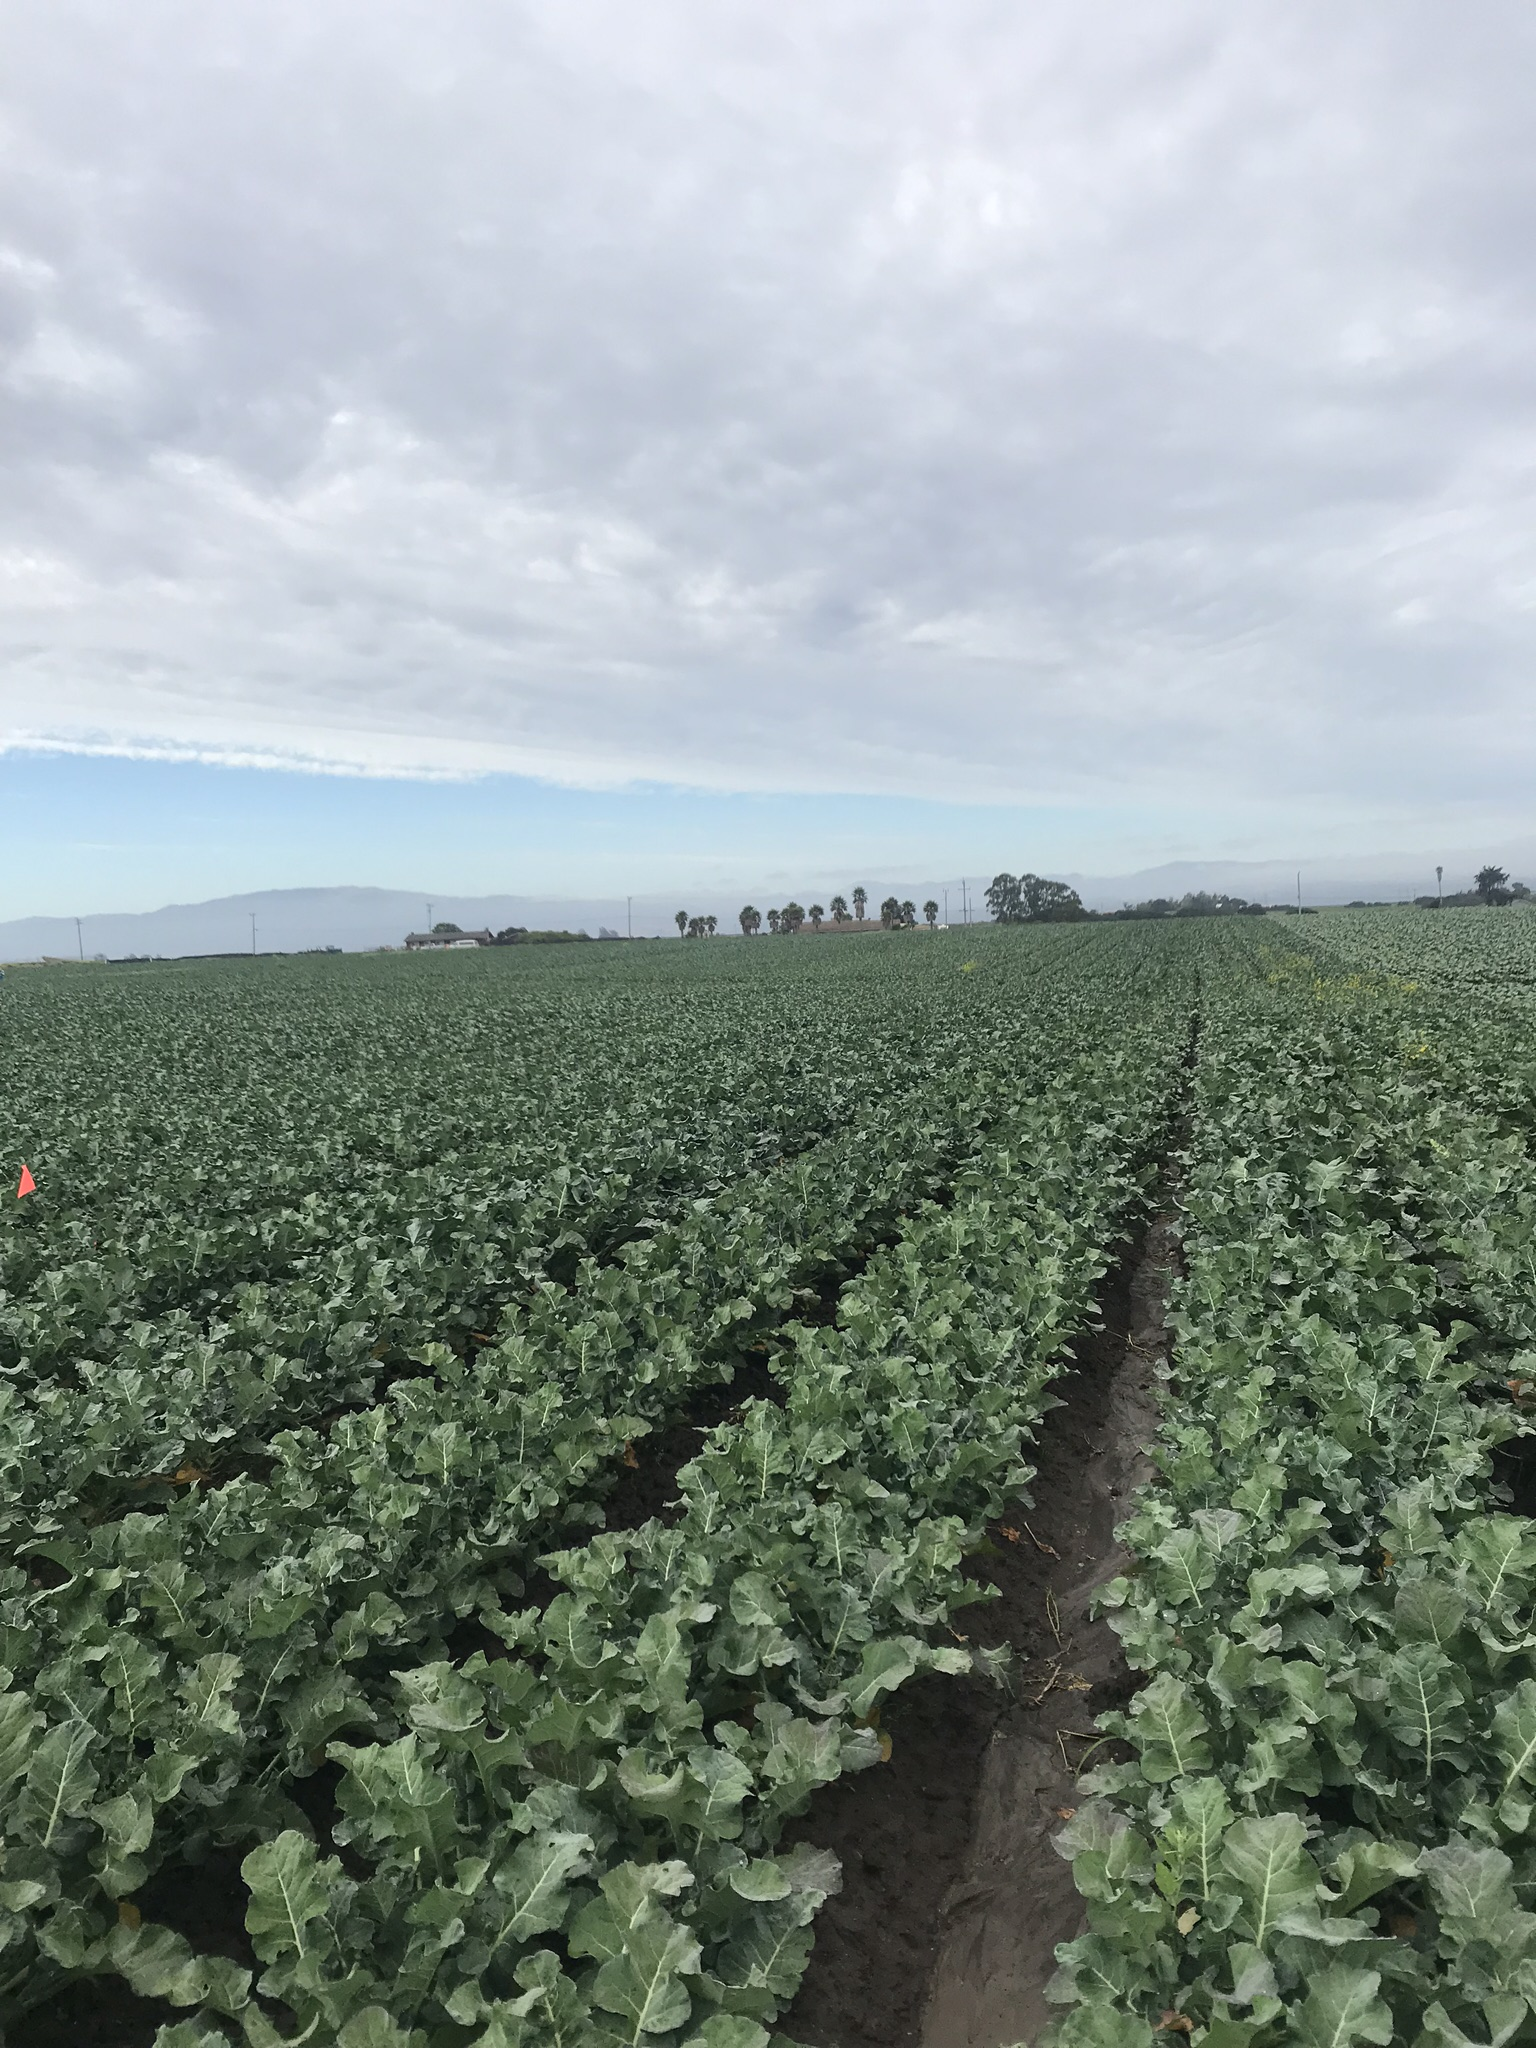 Ocean Mist Organic- Broccoli Field